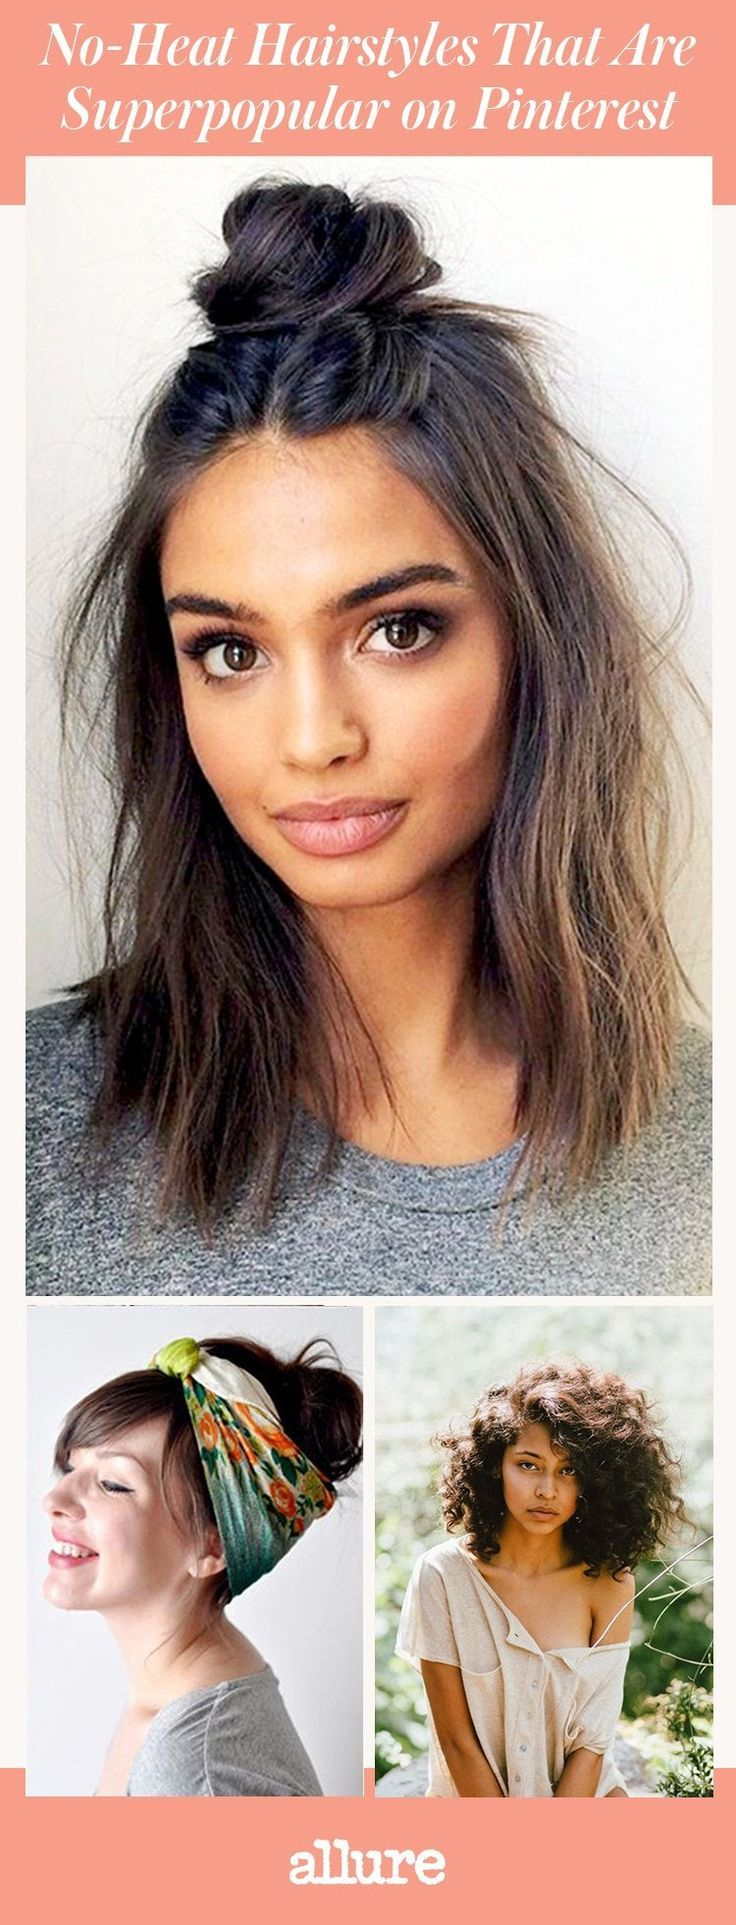 Easy hairstyles for medium hair quick no heat | Etsy